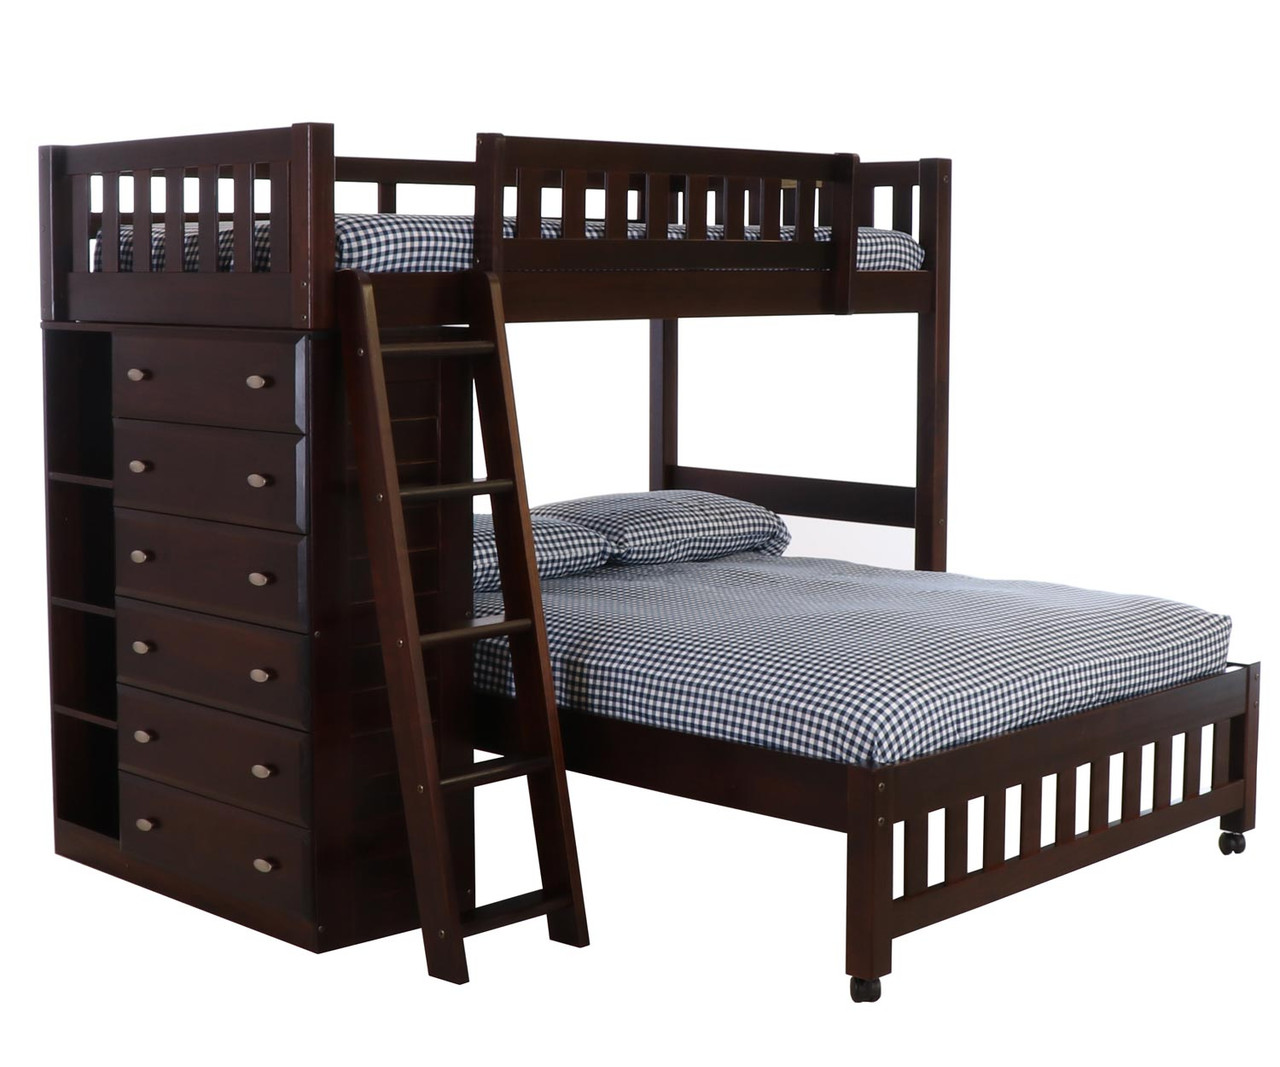 Picture of: Discovery World Furniture Espresso Twin Over Full Loft Bed 2905 Loft Bed For Kids And Teens With Built In Storage Drawers Twin Over Full Dark Espresso Loft Bunkbeds In Orlando And